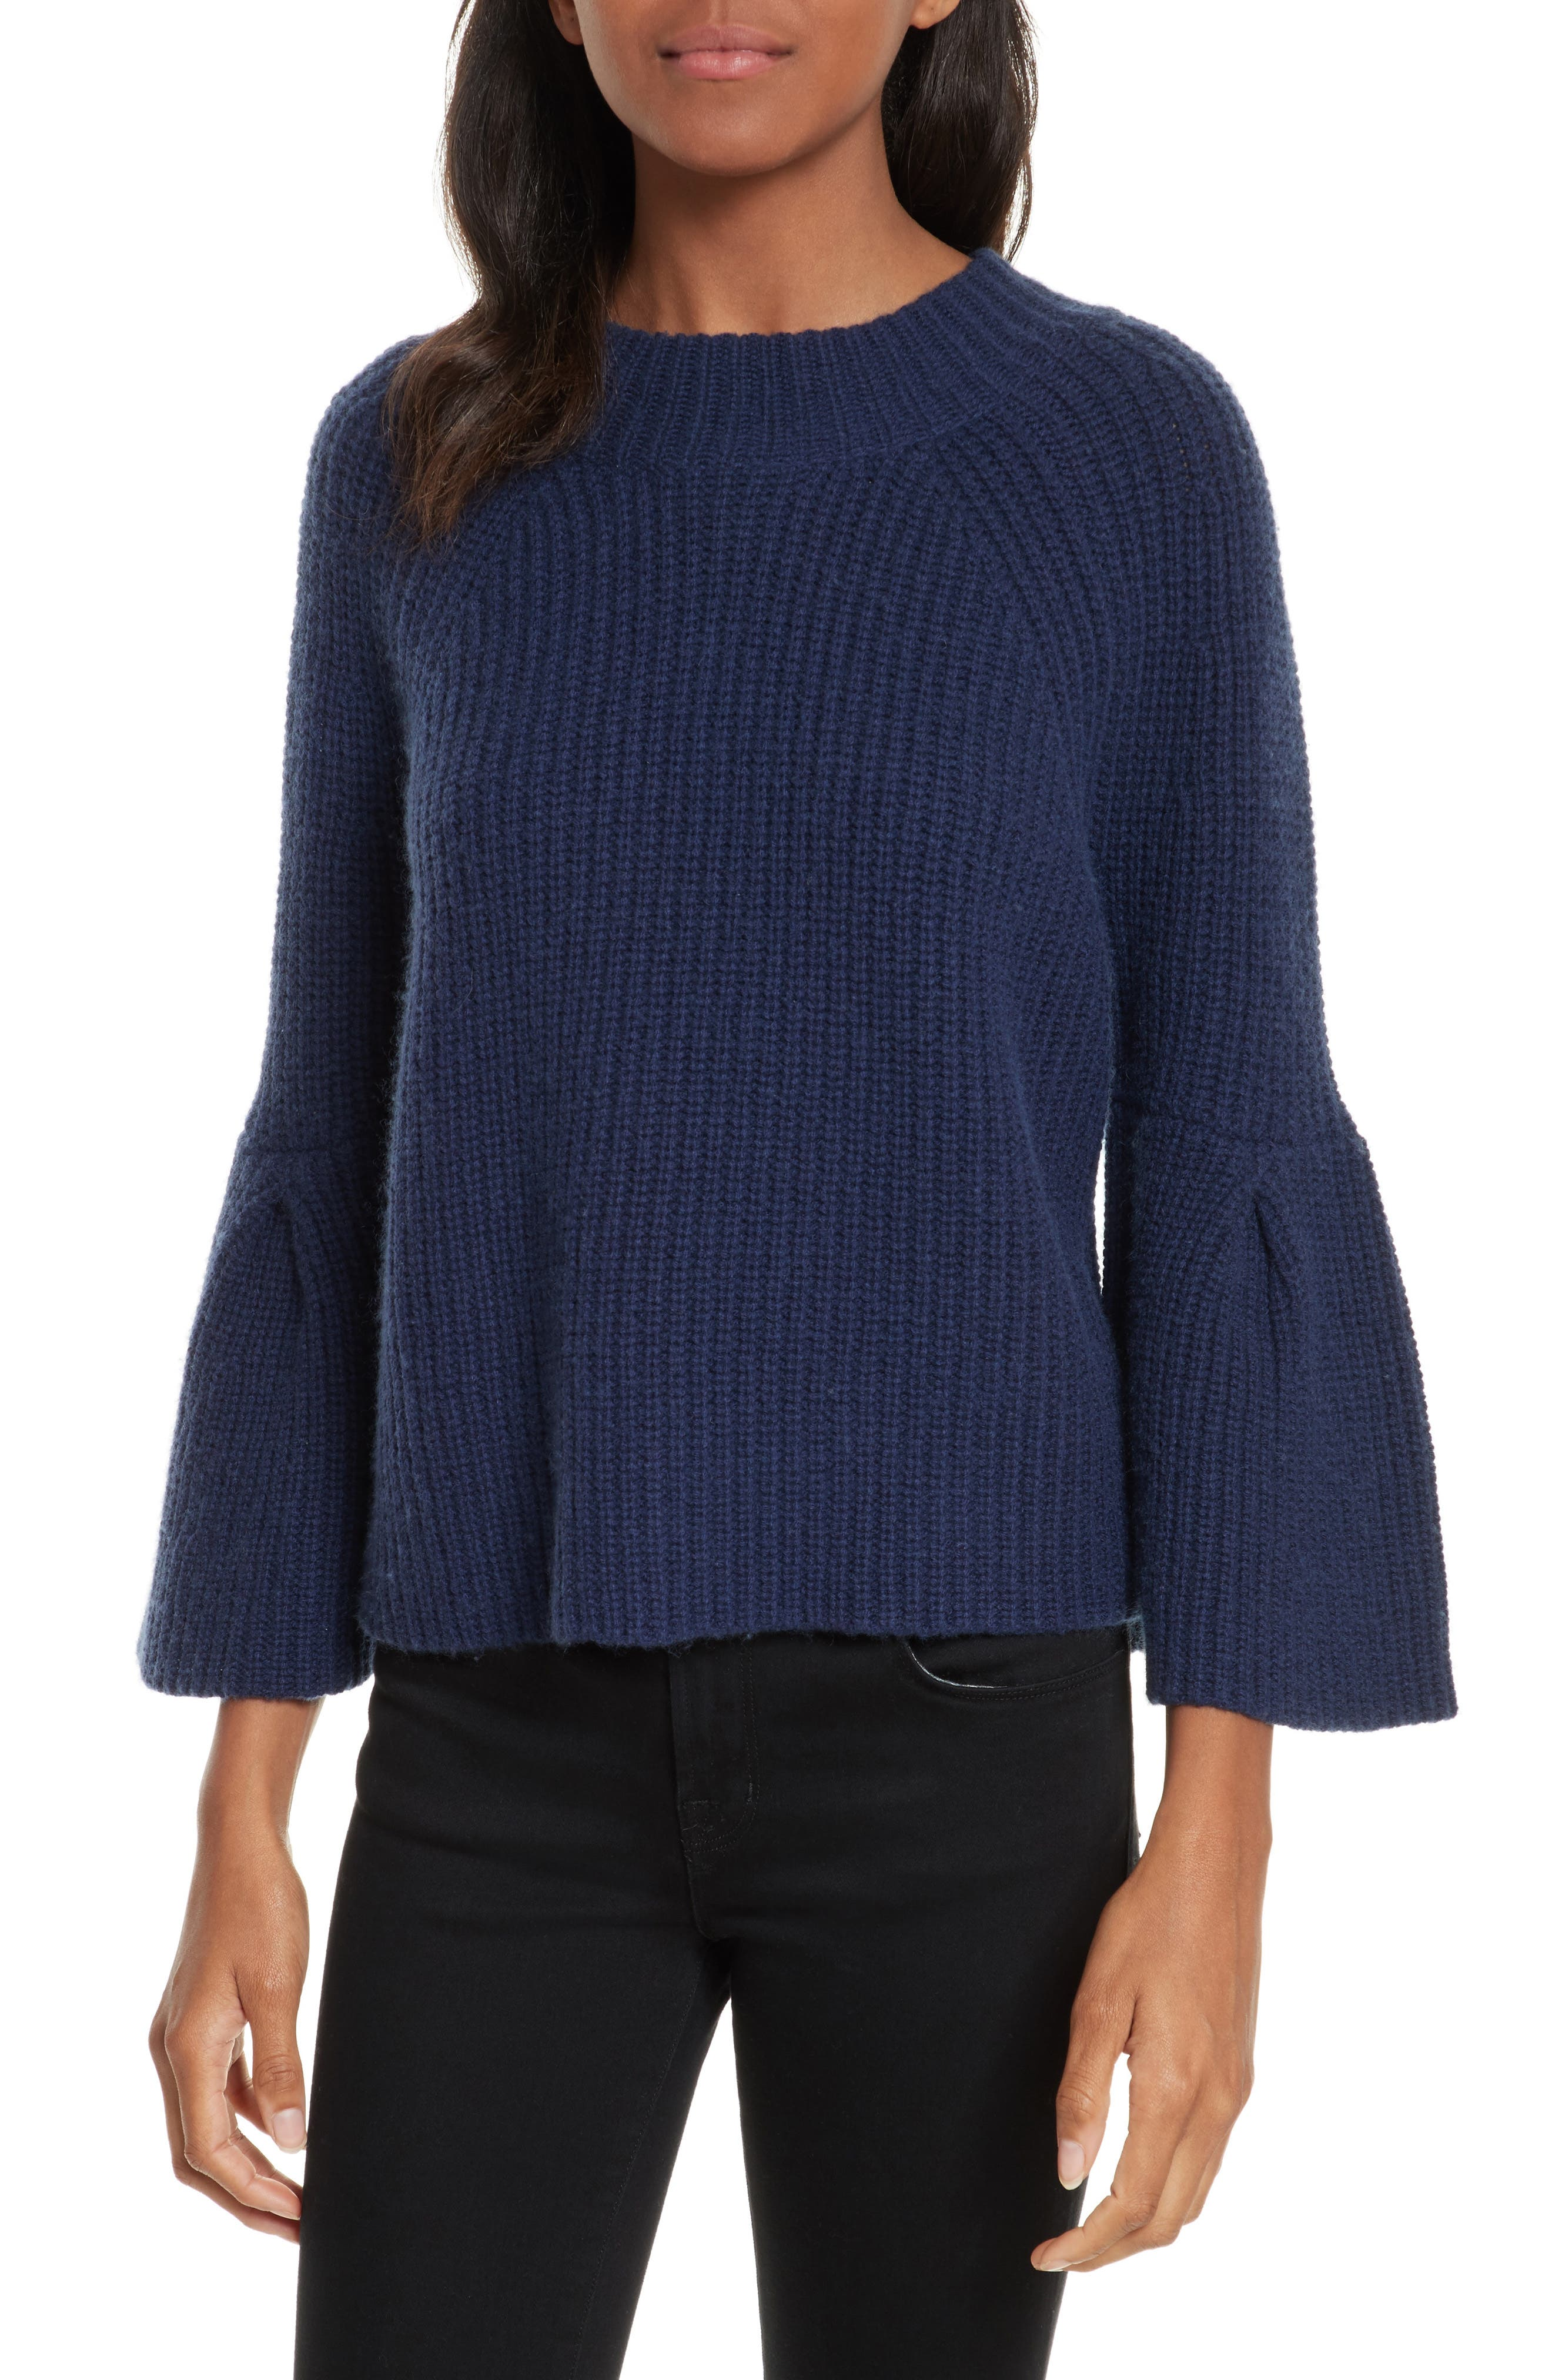 Alternate Image 1 Selected - Joie Ingrit Wool & Cashmere Sweater